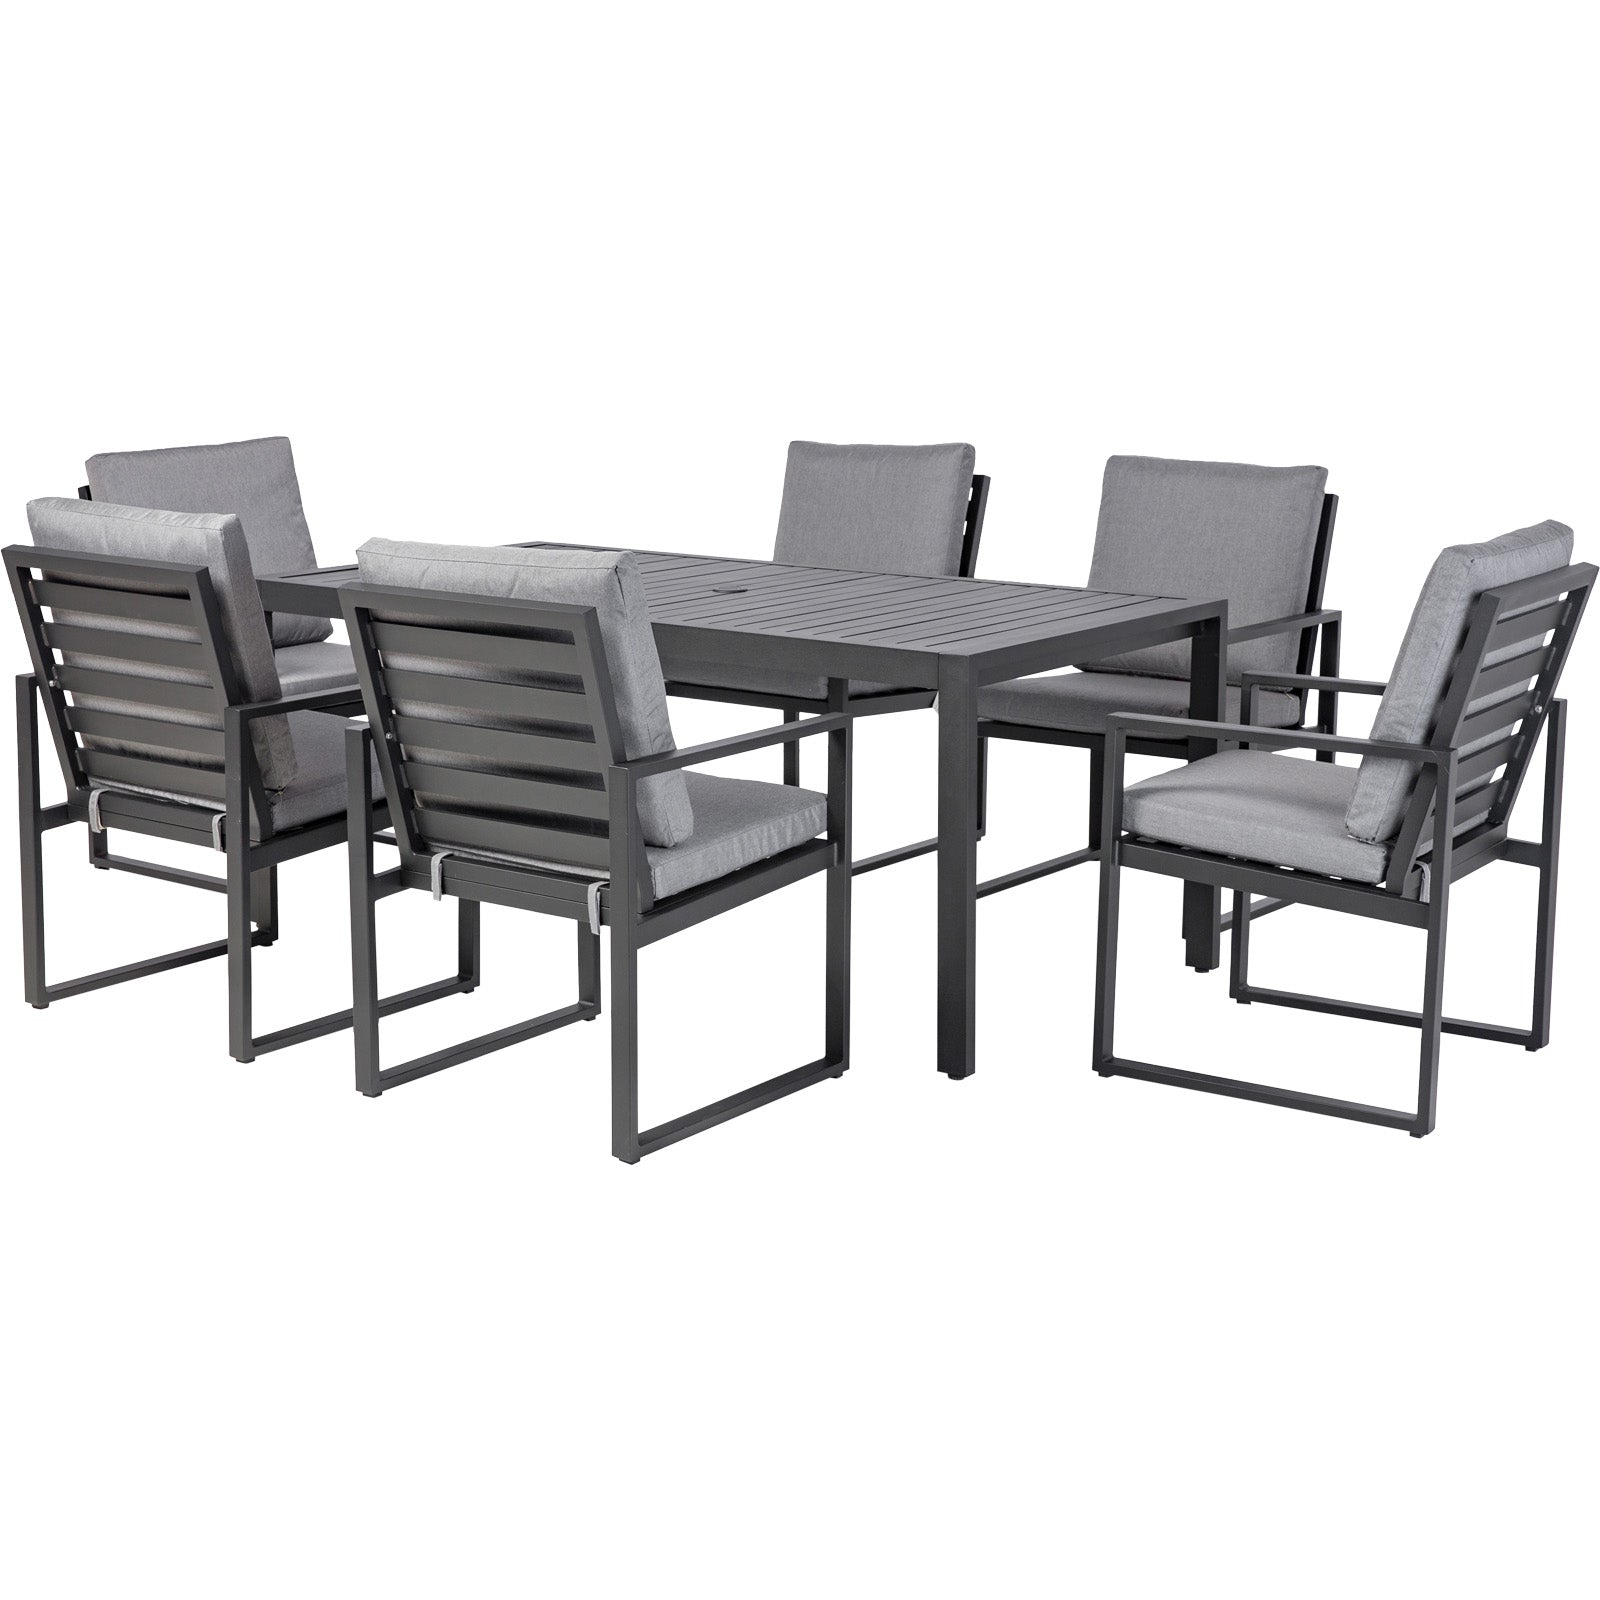 Amalfi 6 Seat Rectangular Dining Set - Slatted Chair